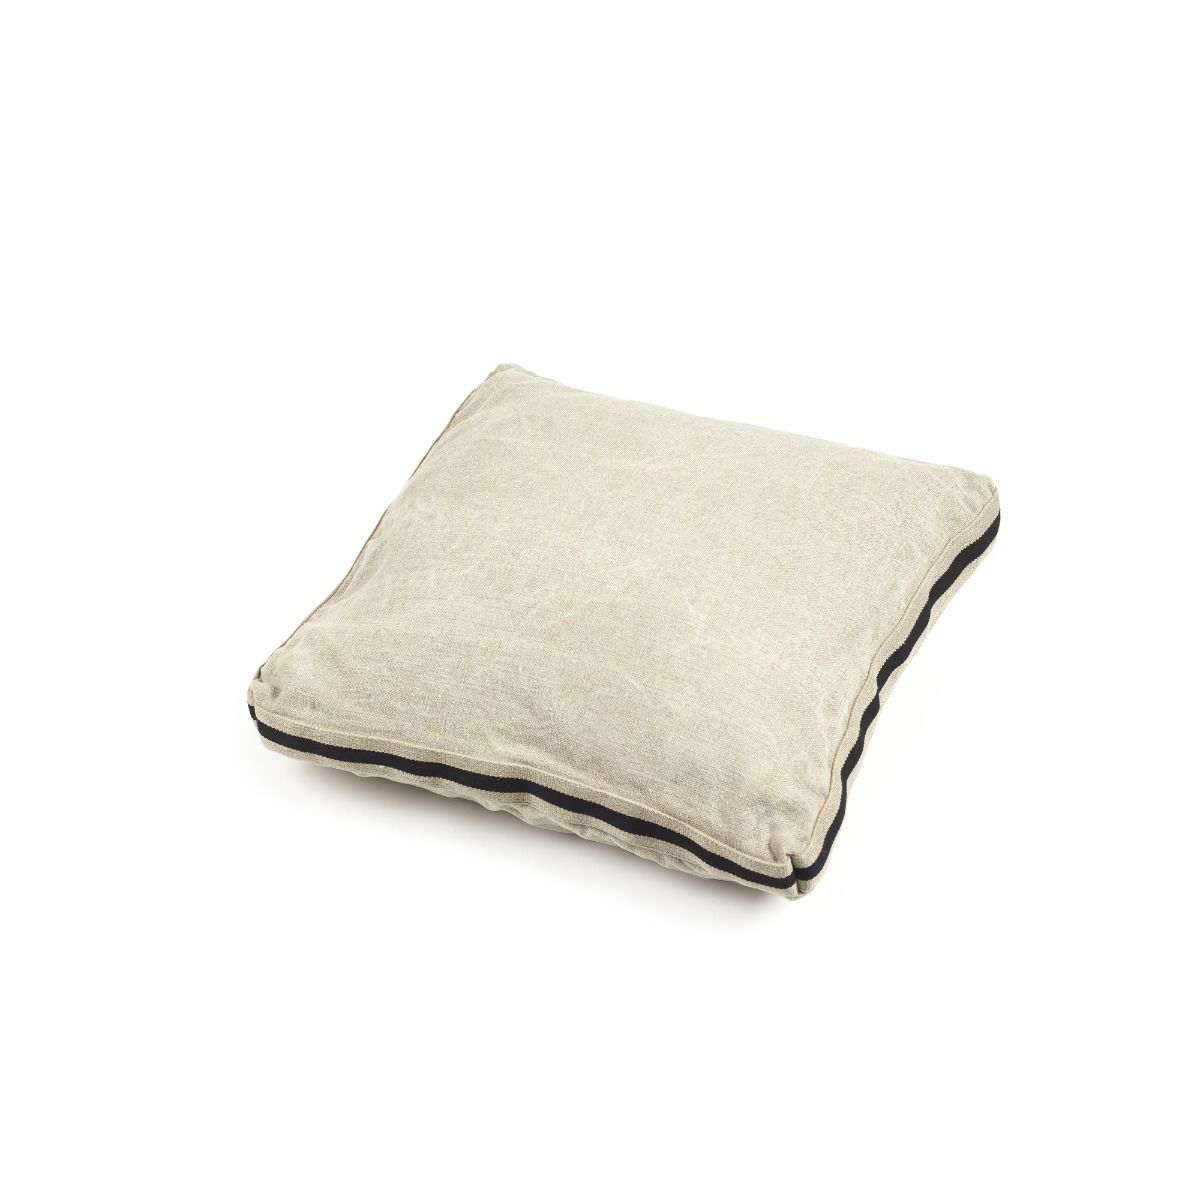 james pillow cushion, libeco, accessories | pillows and cushions, - adorn.house